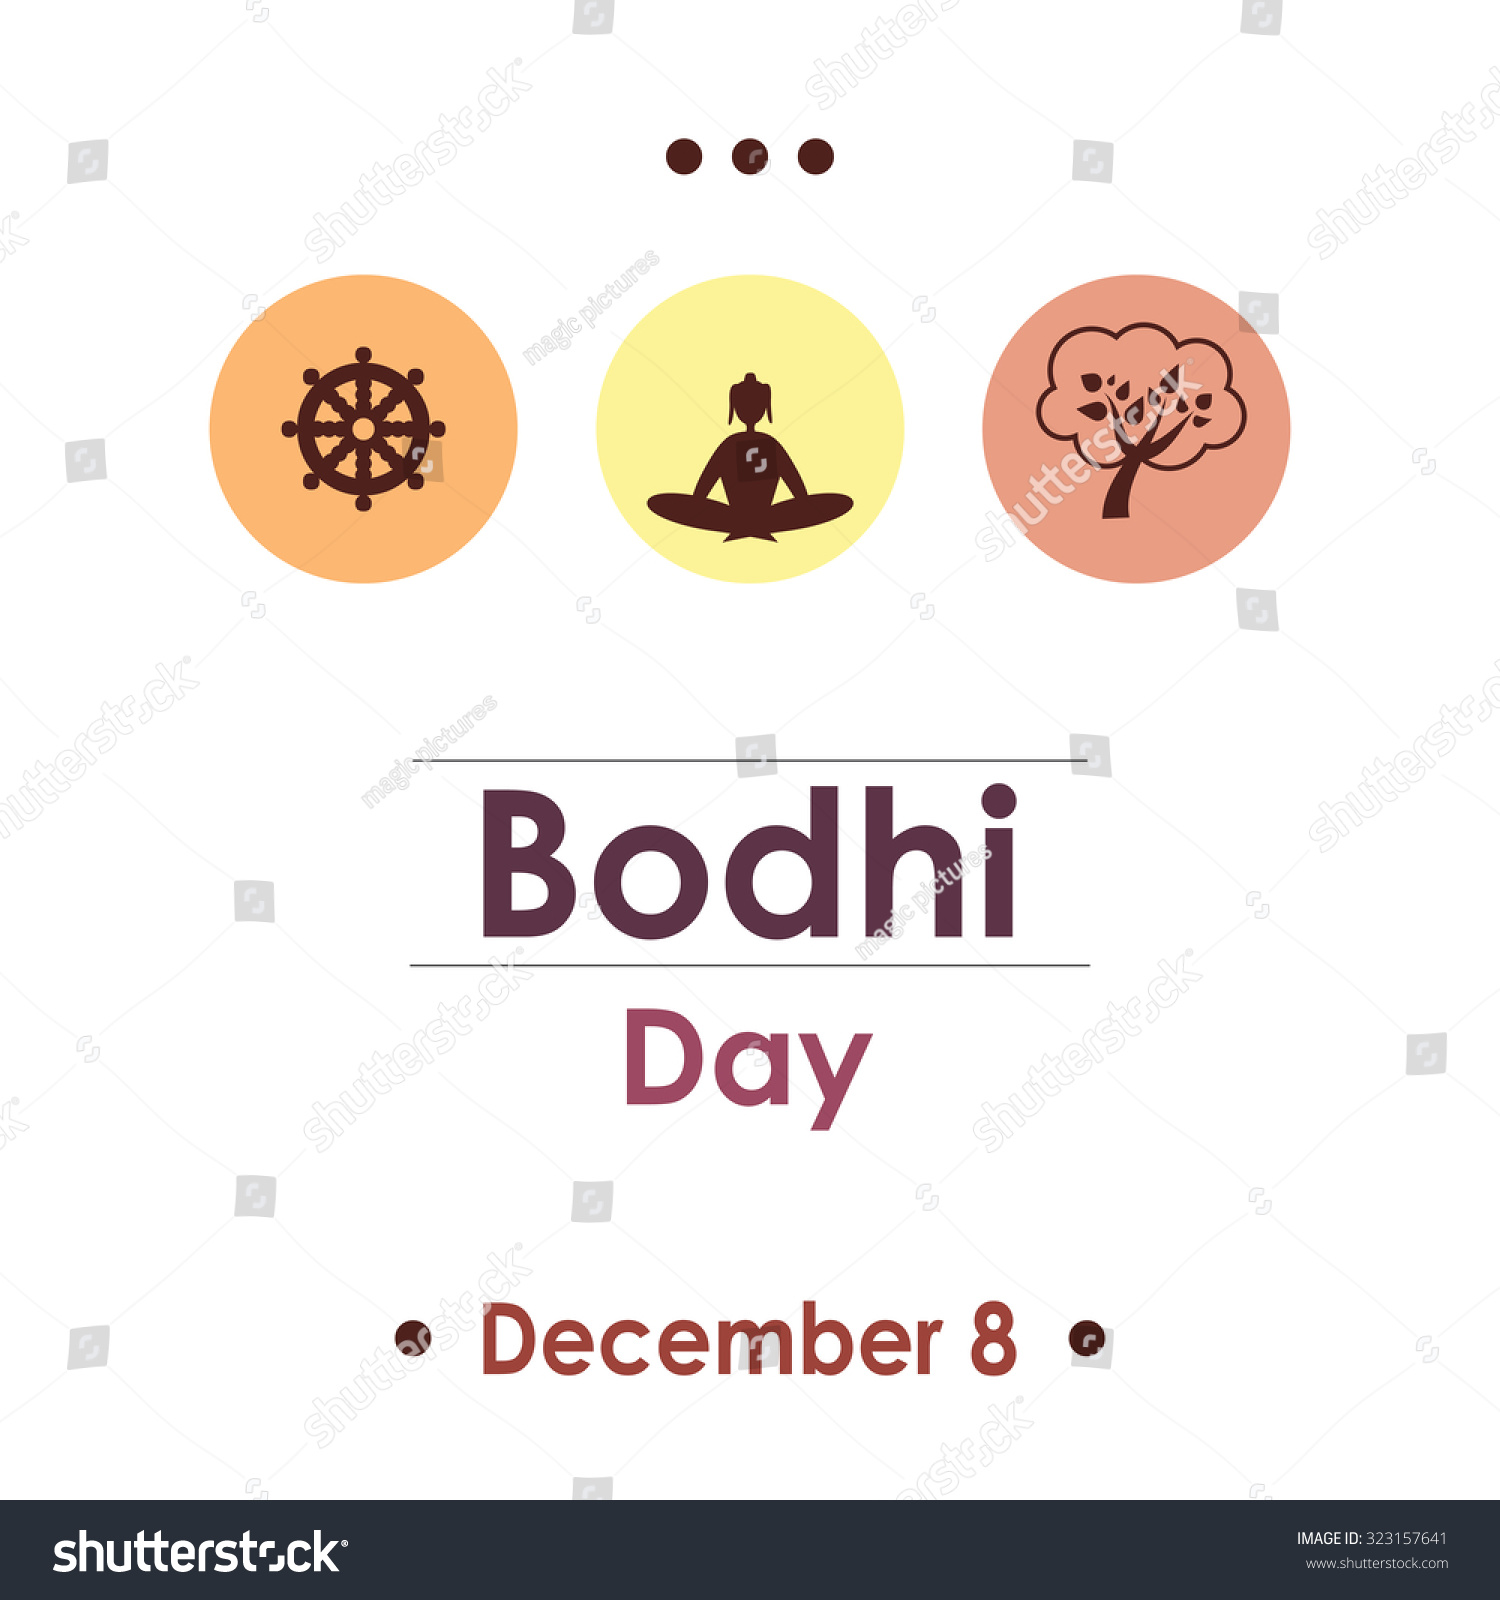 Bodhi Day Dotted Greeting Card Design Stock Vector Royalty Free